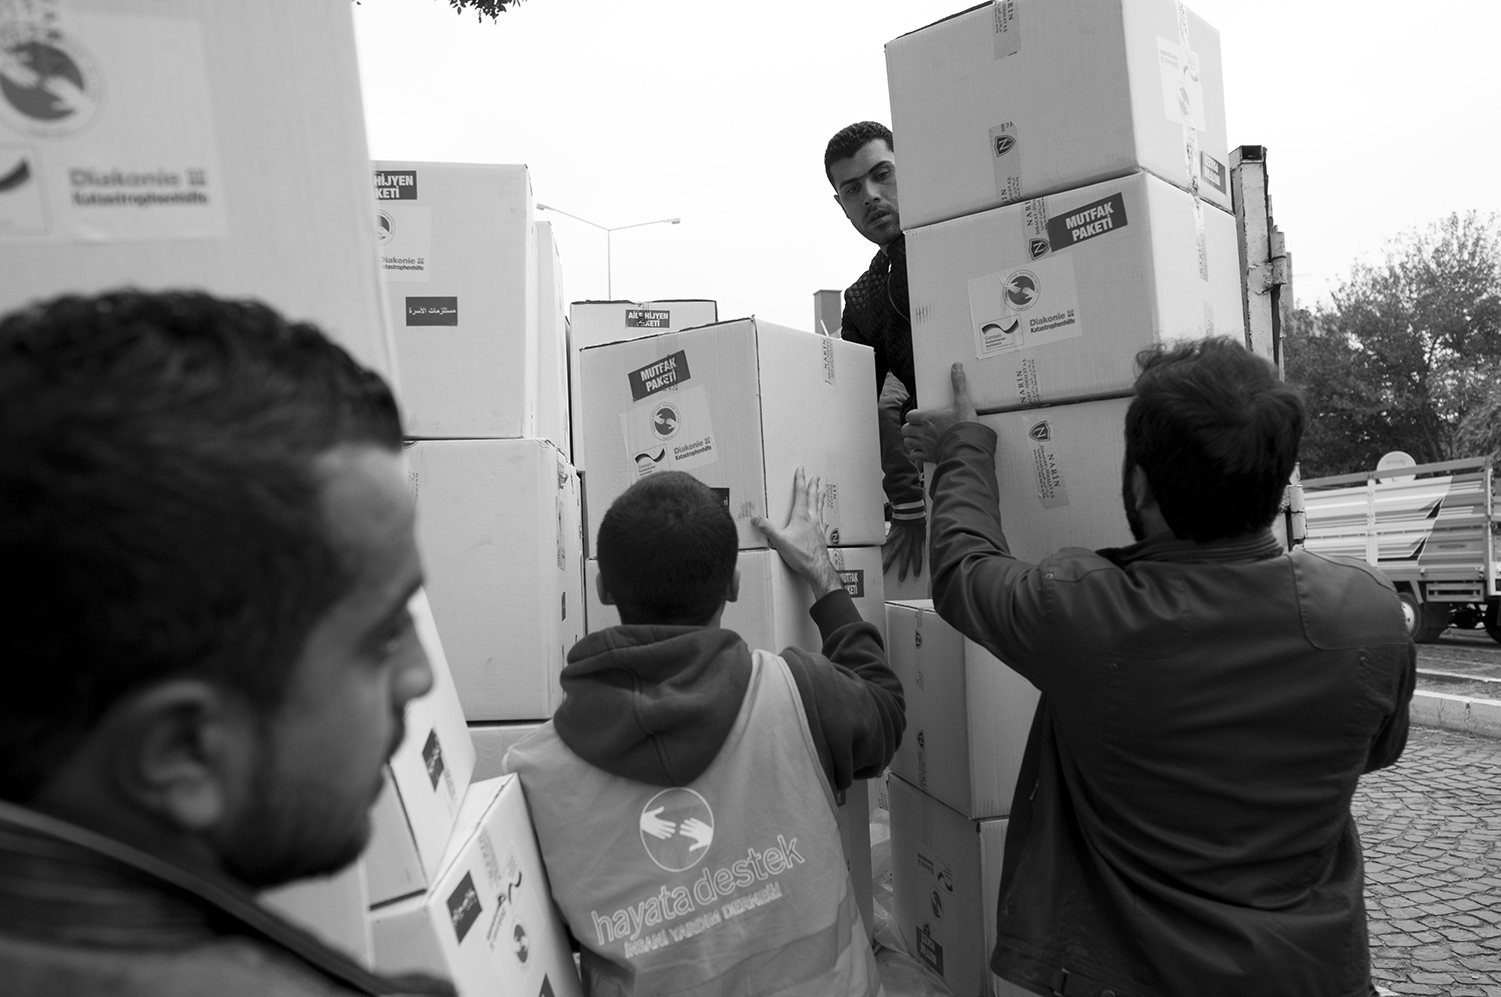 Volunteers and Hayata Destek workers finishloading a truck with aid boxes which are designatedfor Syriansliving outside of the refugee camps around Suruç.